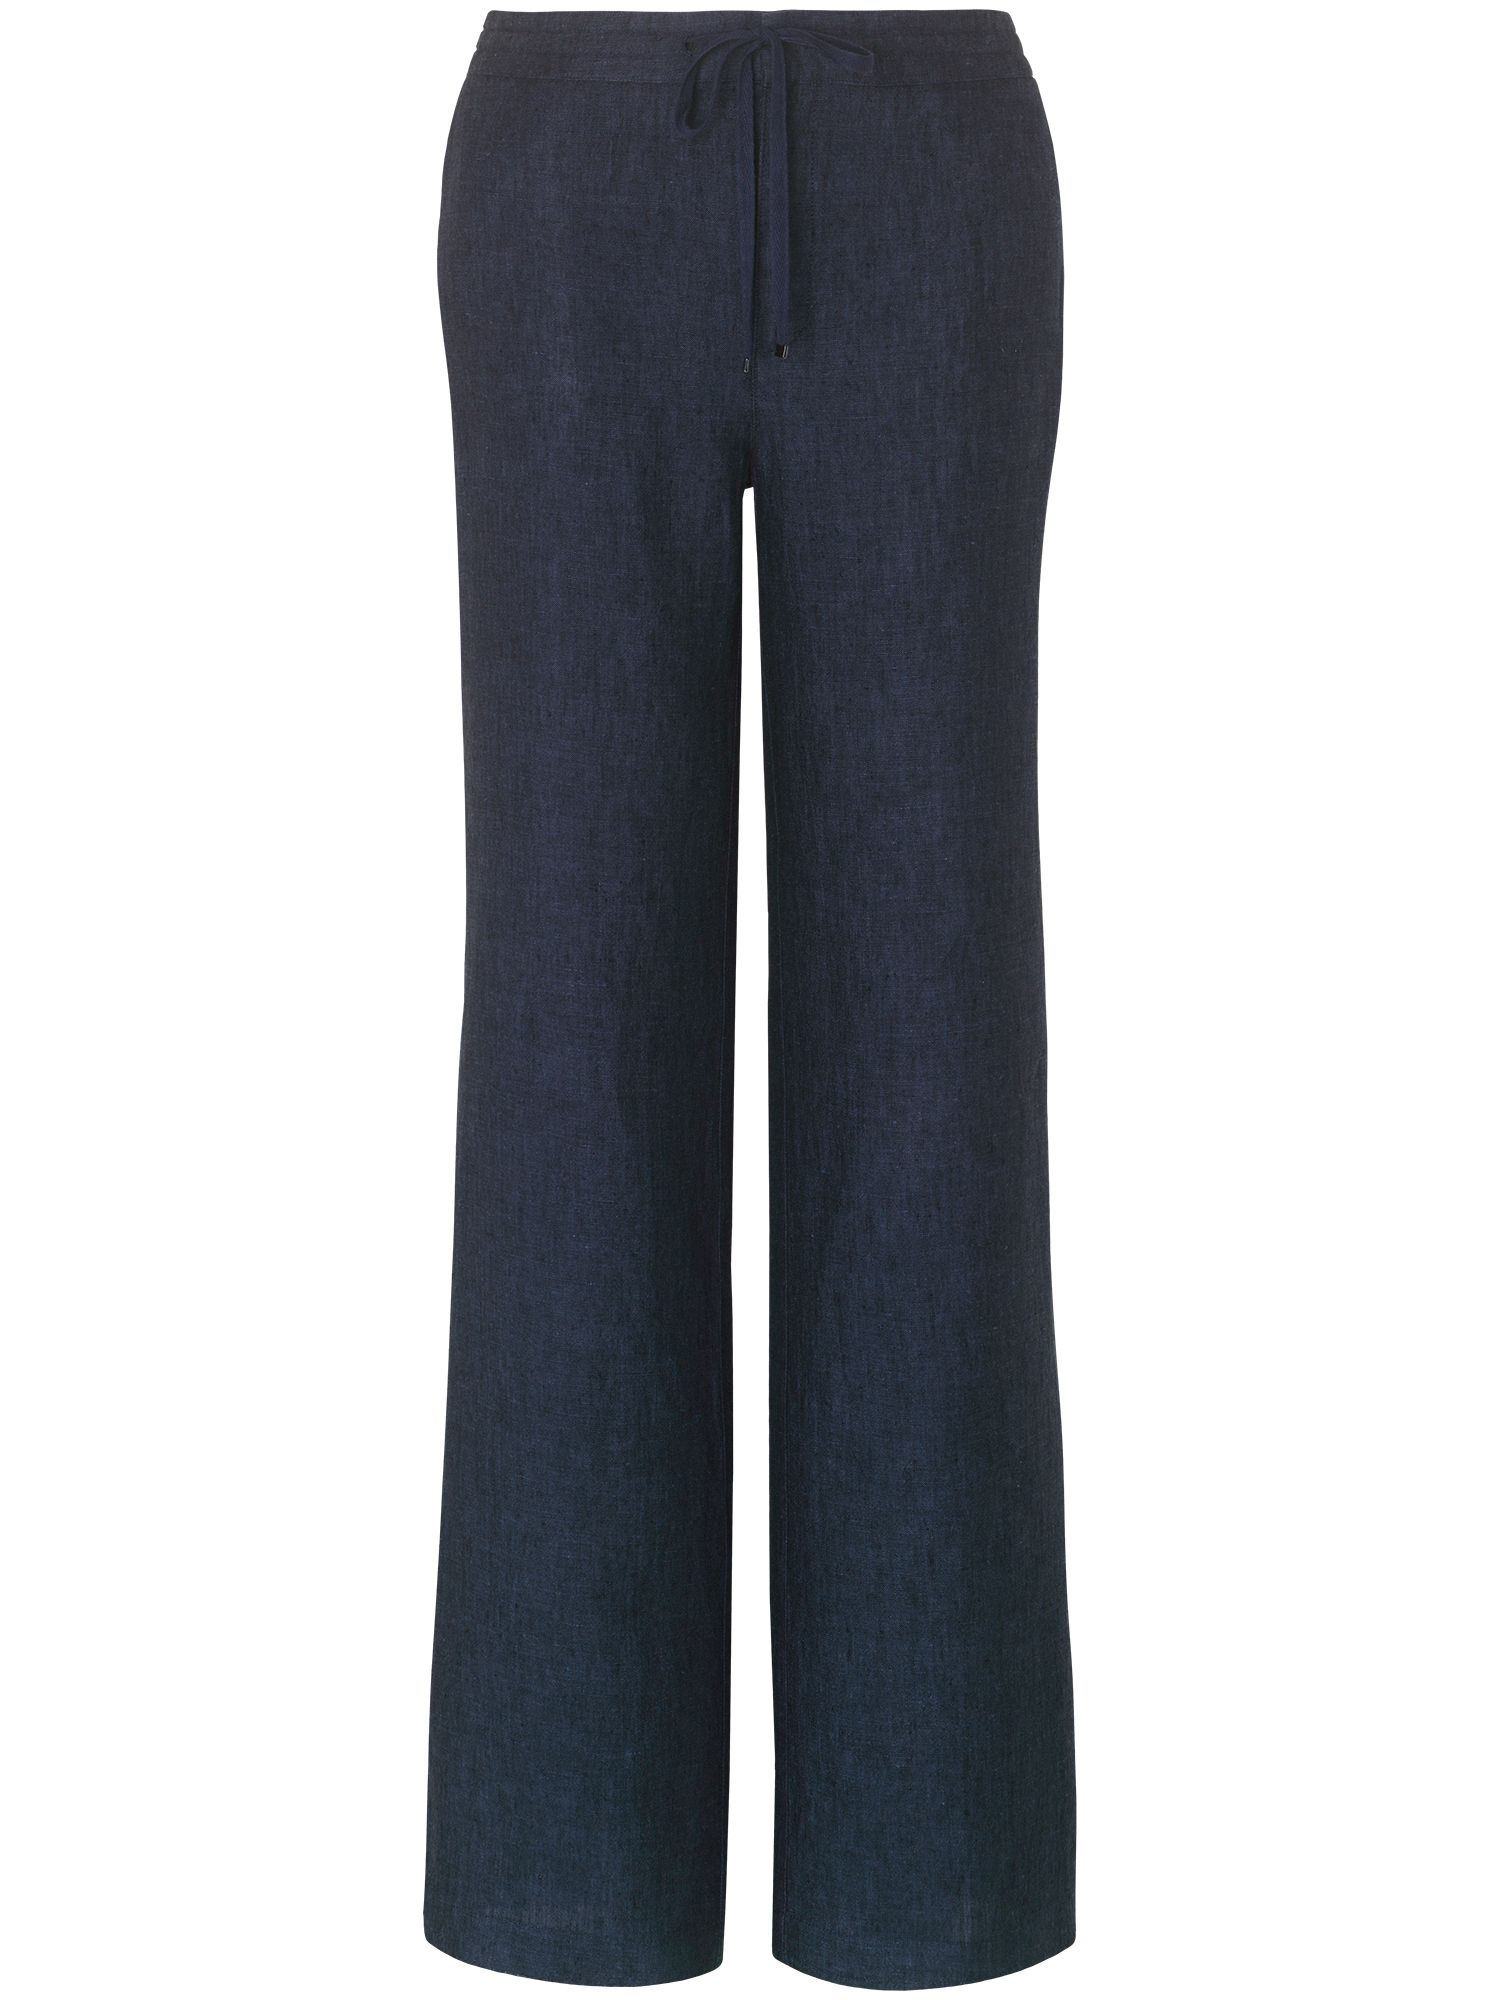 Carla cross dye linen trousers